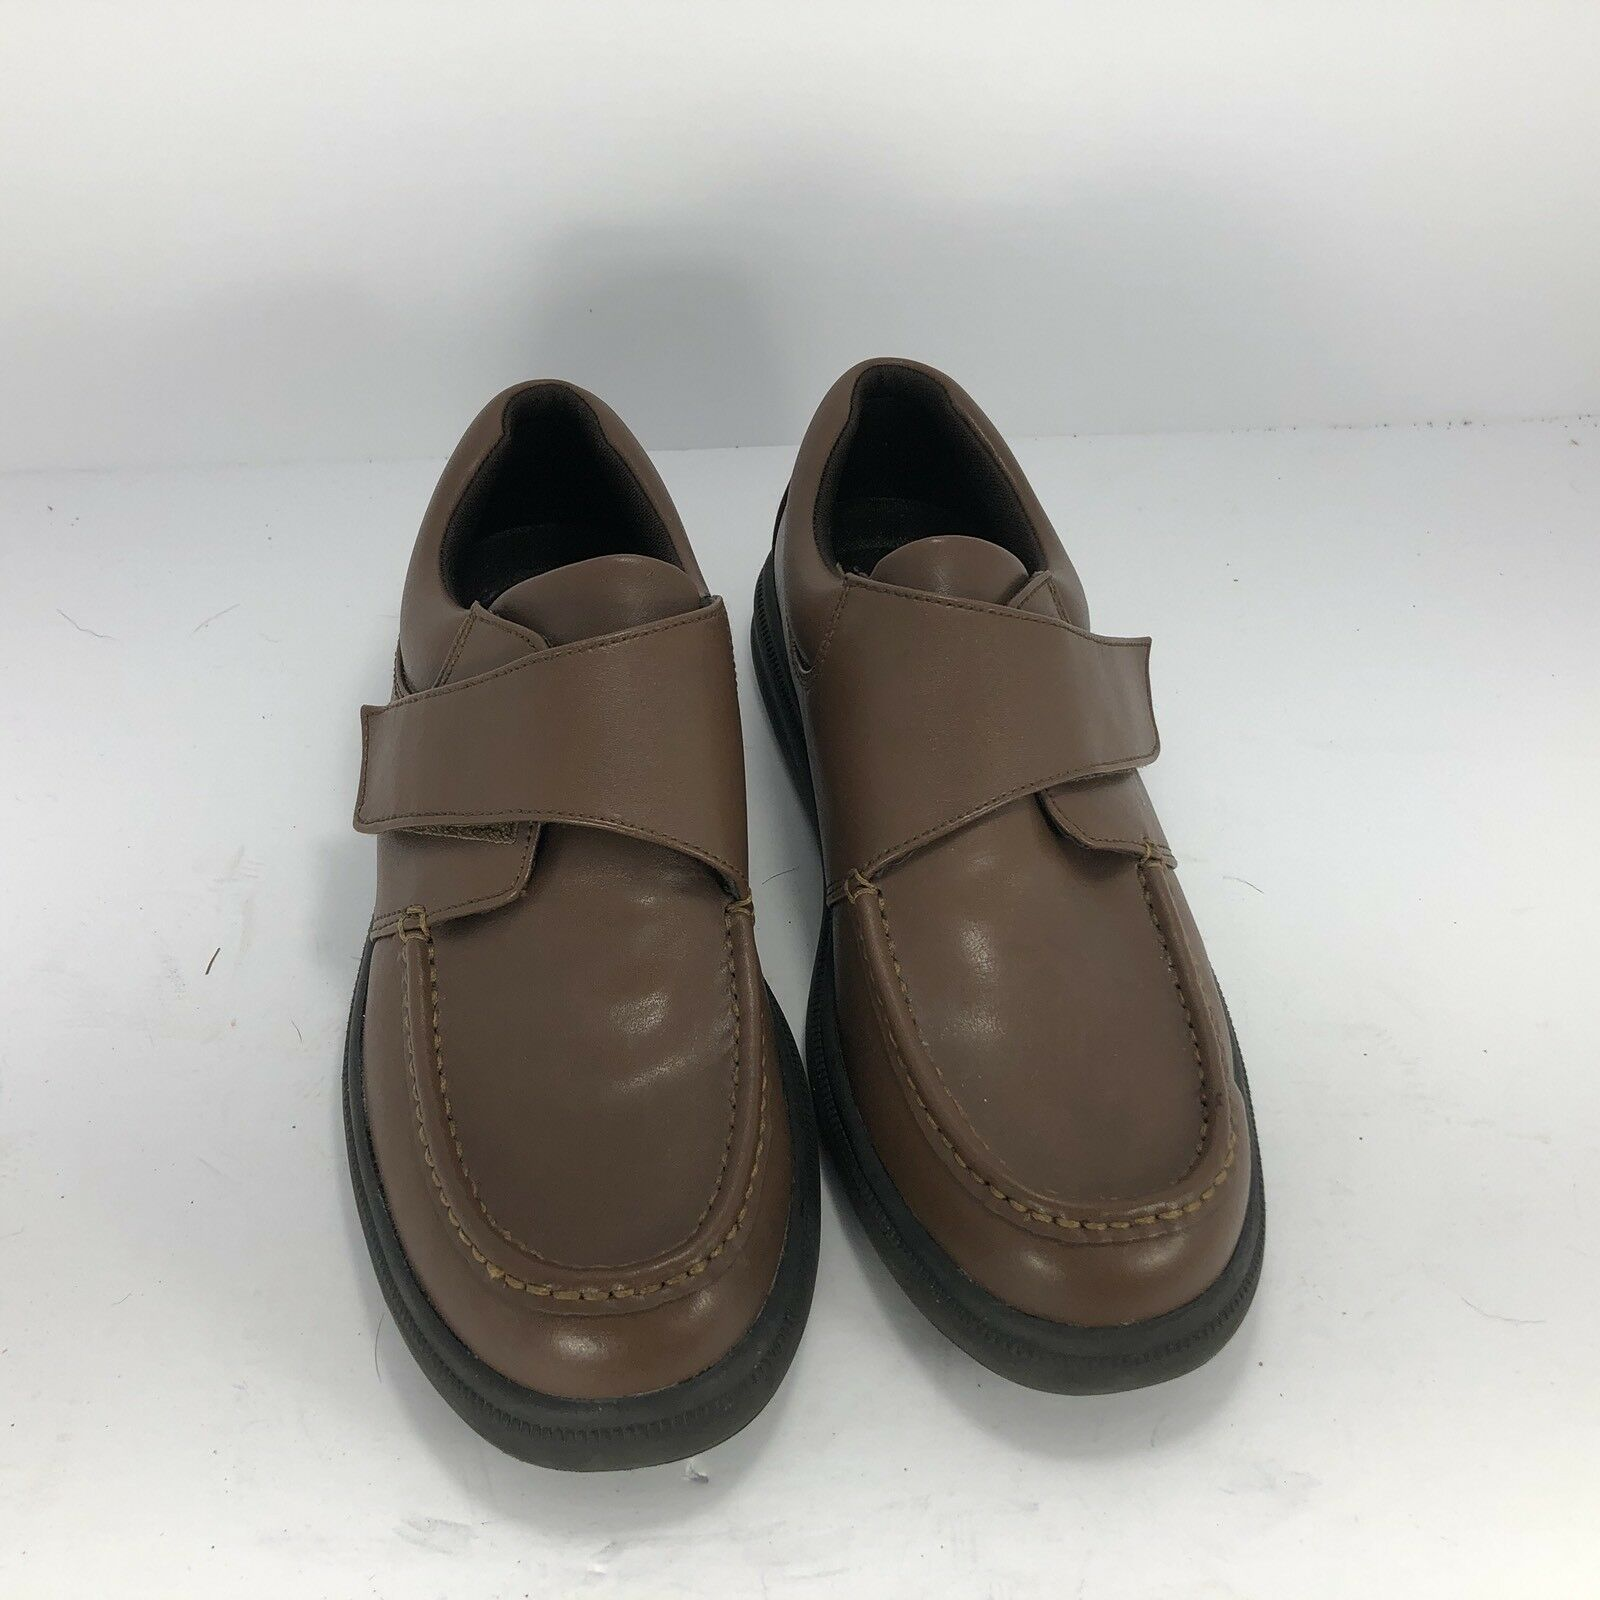 Hush Puppies GIL H18801 hommes Tan Leather Slip On Single Strap Comfort Chaussures